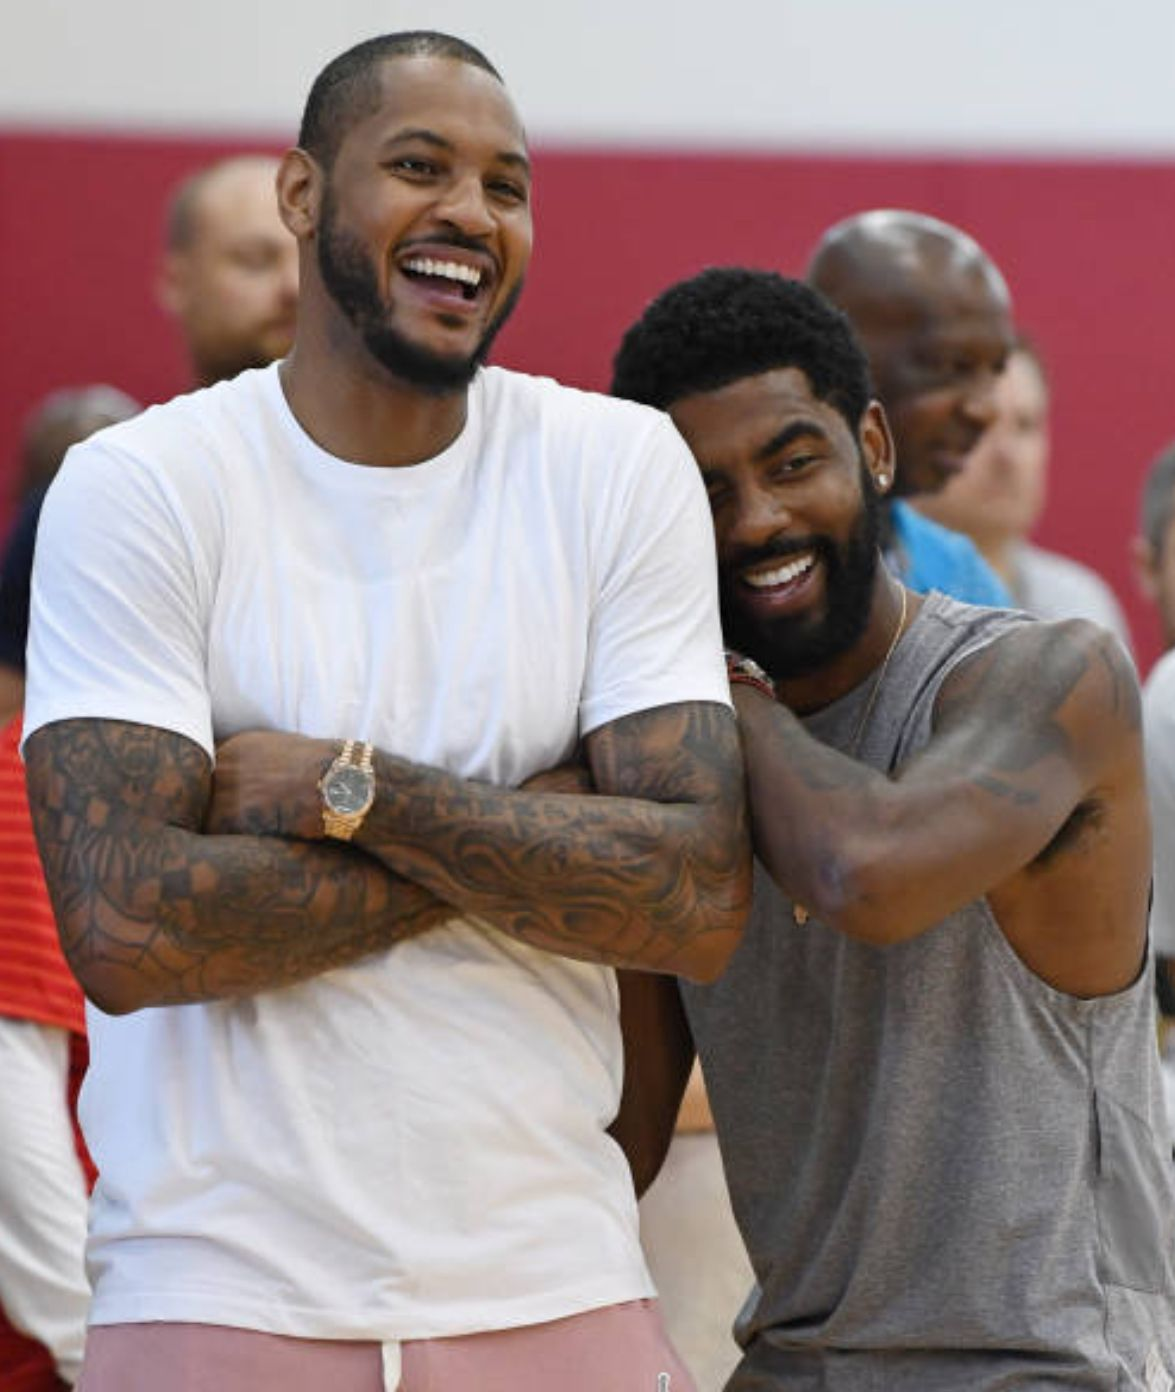 I remember when Melo and Kyrie played a pick up game during summer 17' and people were gassed because we thought Kyrie was recruiting him to the Cavs. #KyrieIrving #CarmeloAnthony